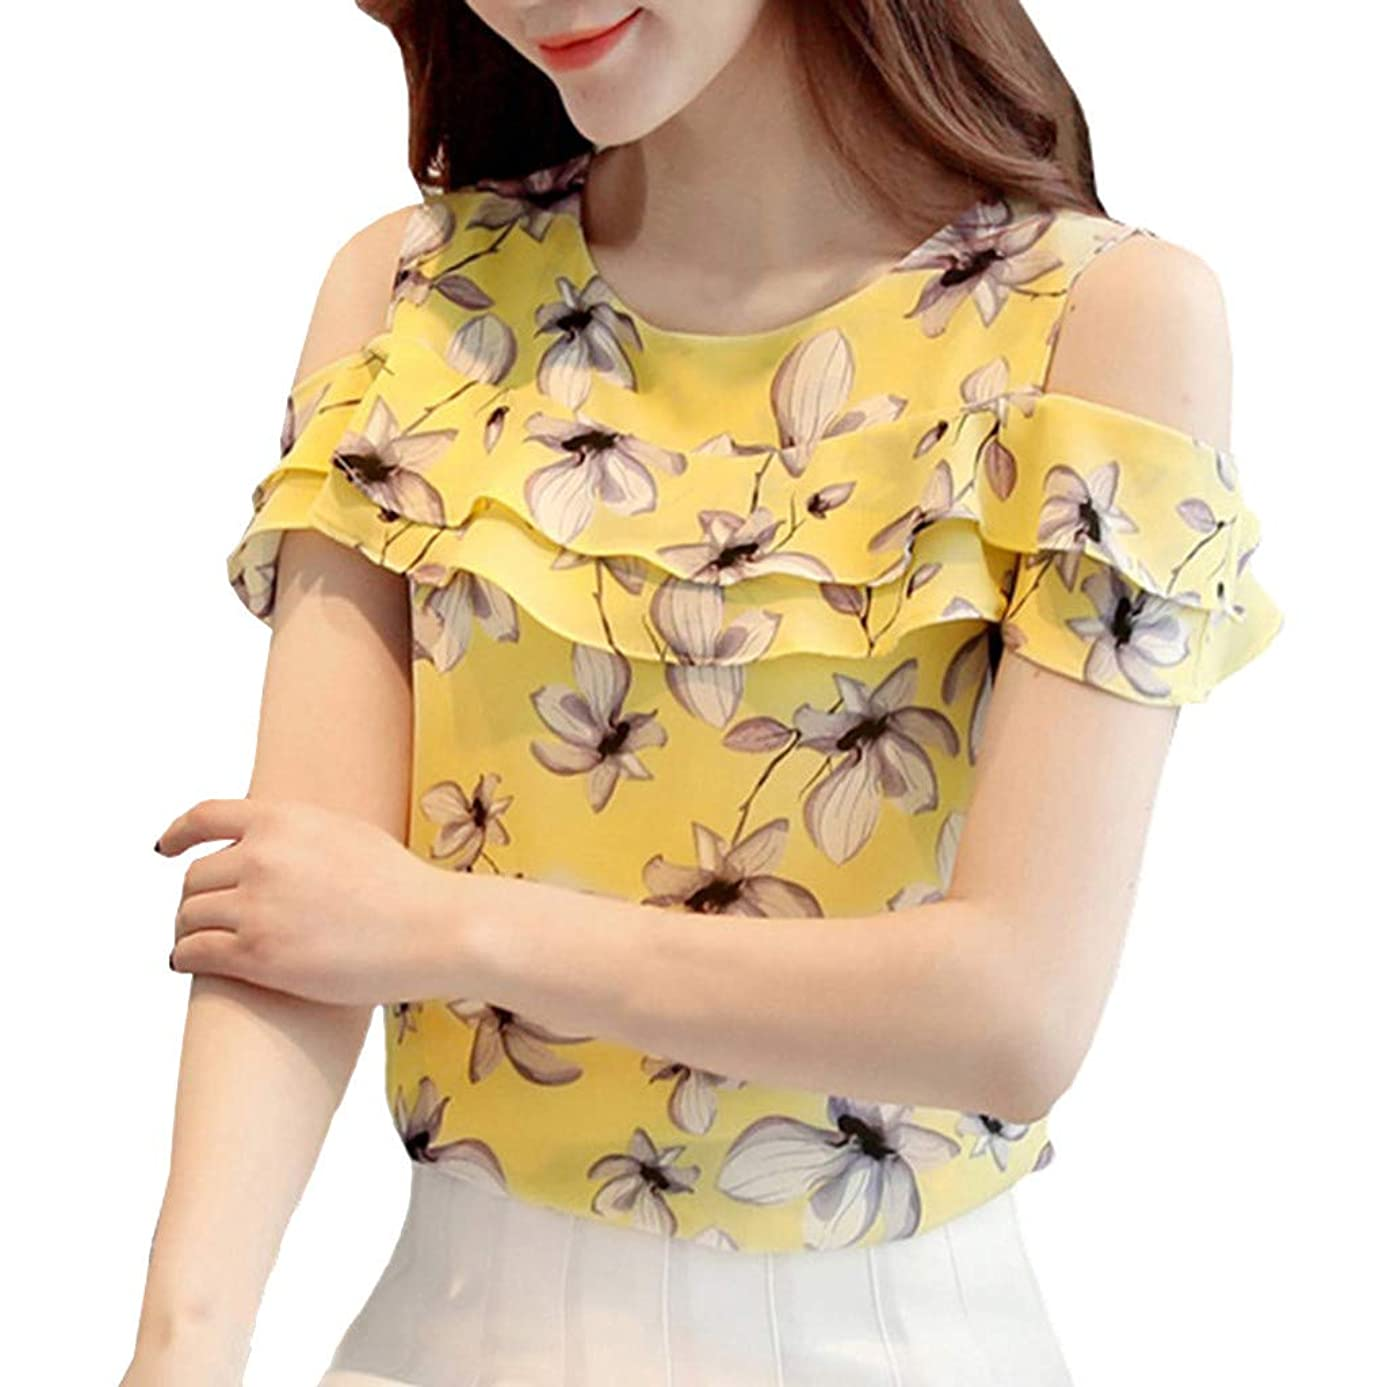 Ximandi Summer Women's Off Shoulder Ruffles Tops Casual Chiffon Floral Print Blouses Casual Korean Style Tops